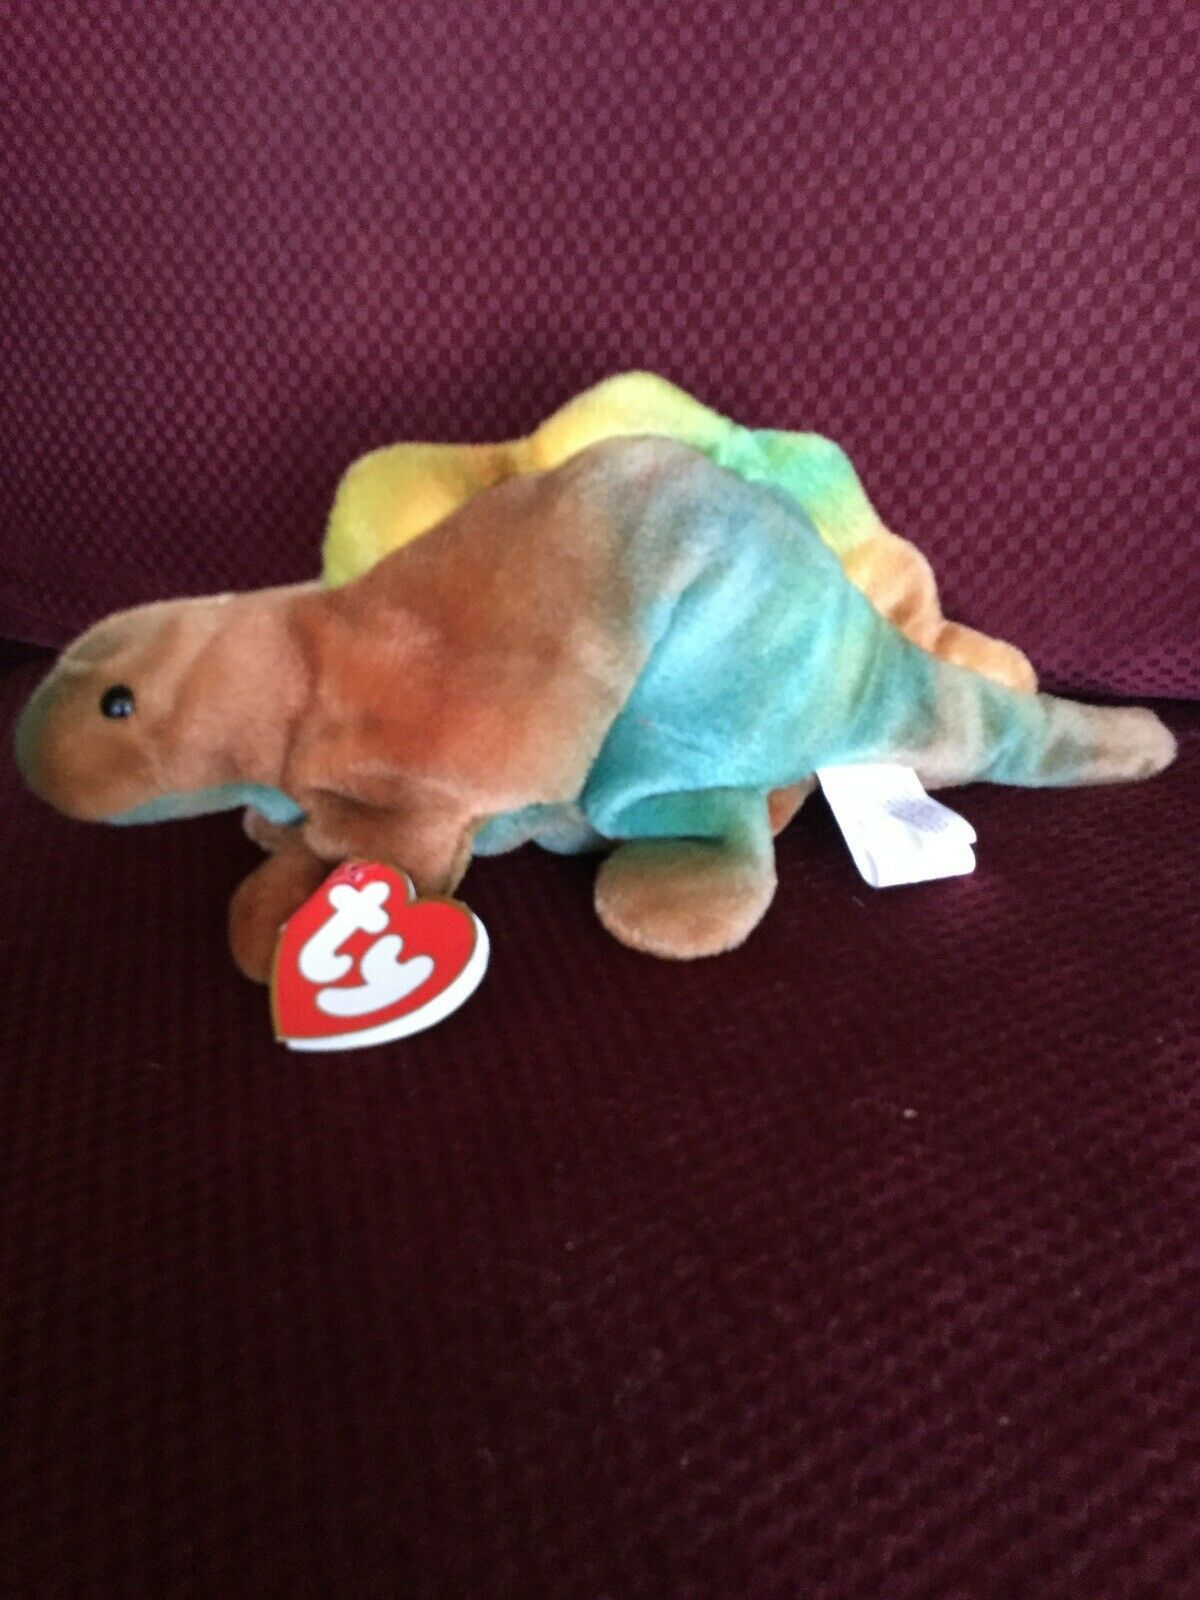 Halo The Bear Beanie Baby Value : beanie, value, These, Expensive, Collectible, Beanie, Babies, Worth, Online?